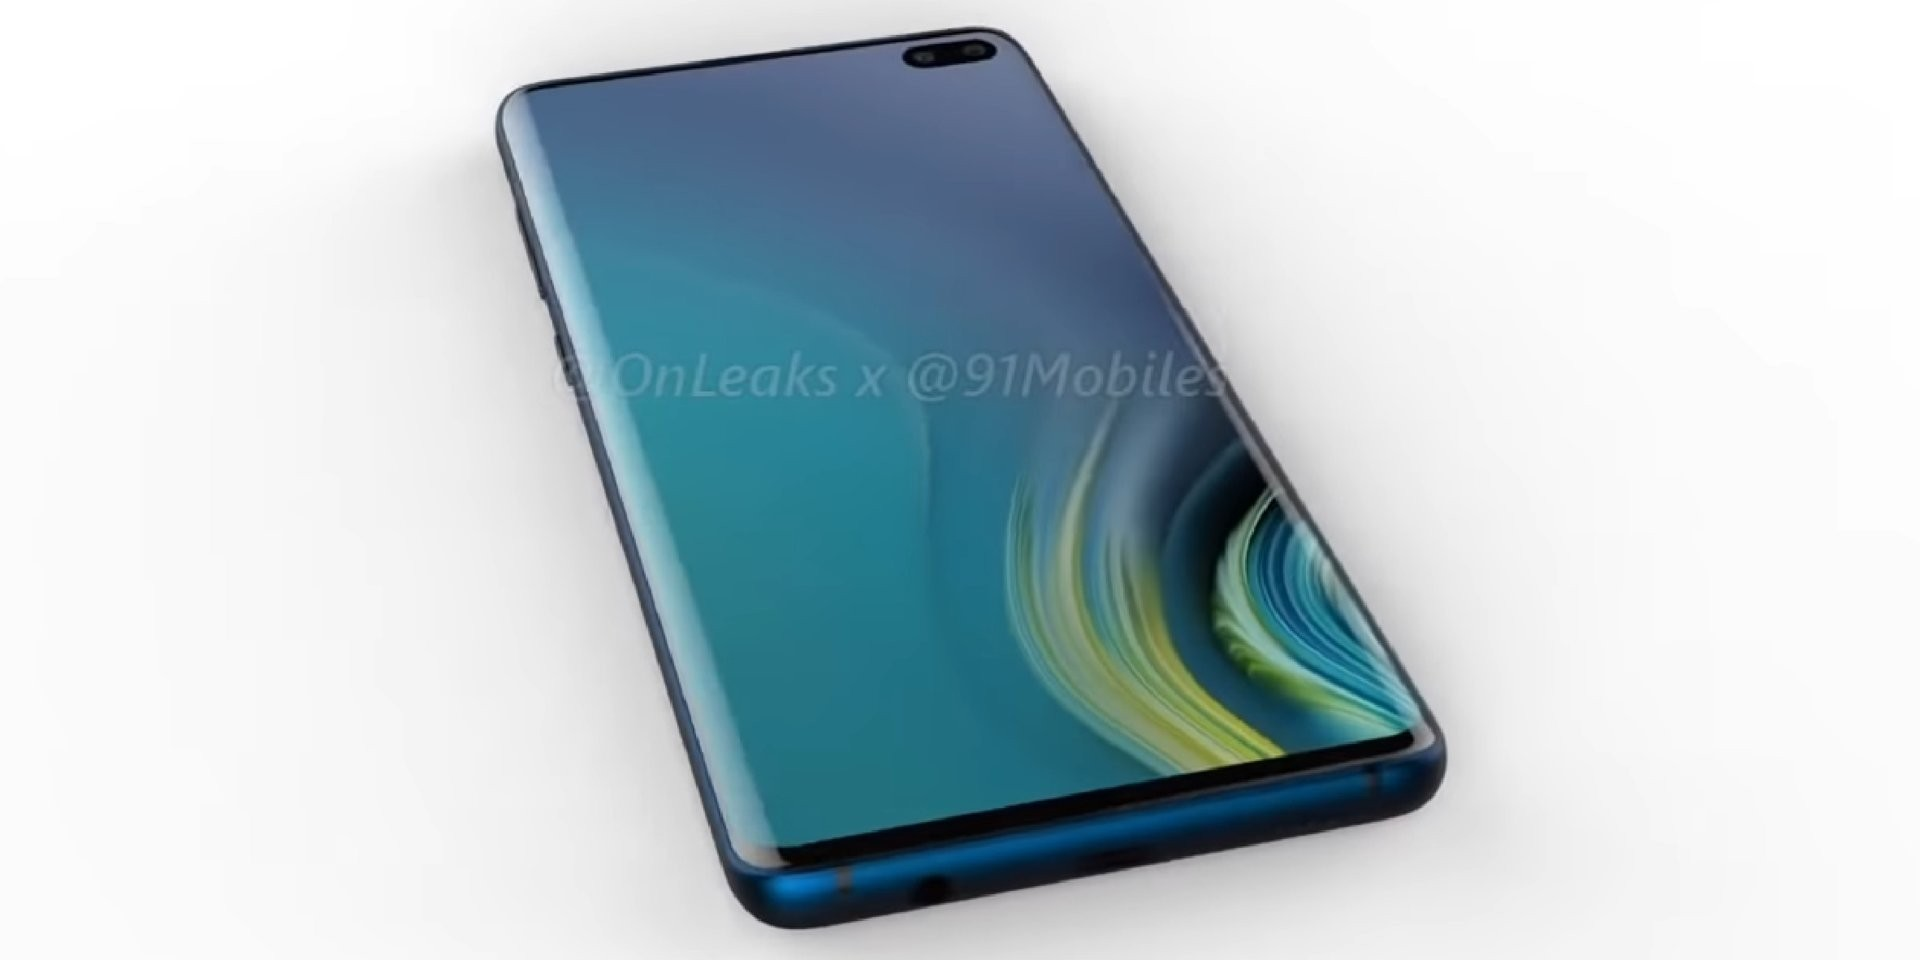 5bdb673616c9 What can we expect from Samsung's upcoming Galaxy S10 smartphone? – here  are the rumours | South China Morning Post